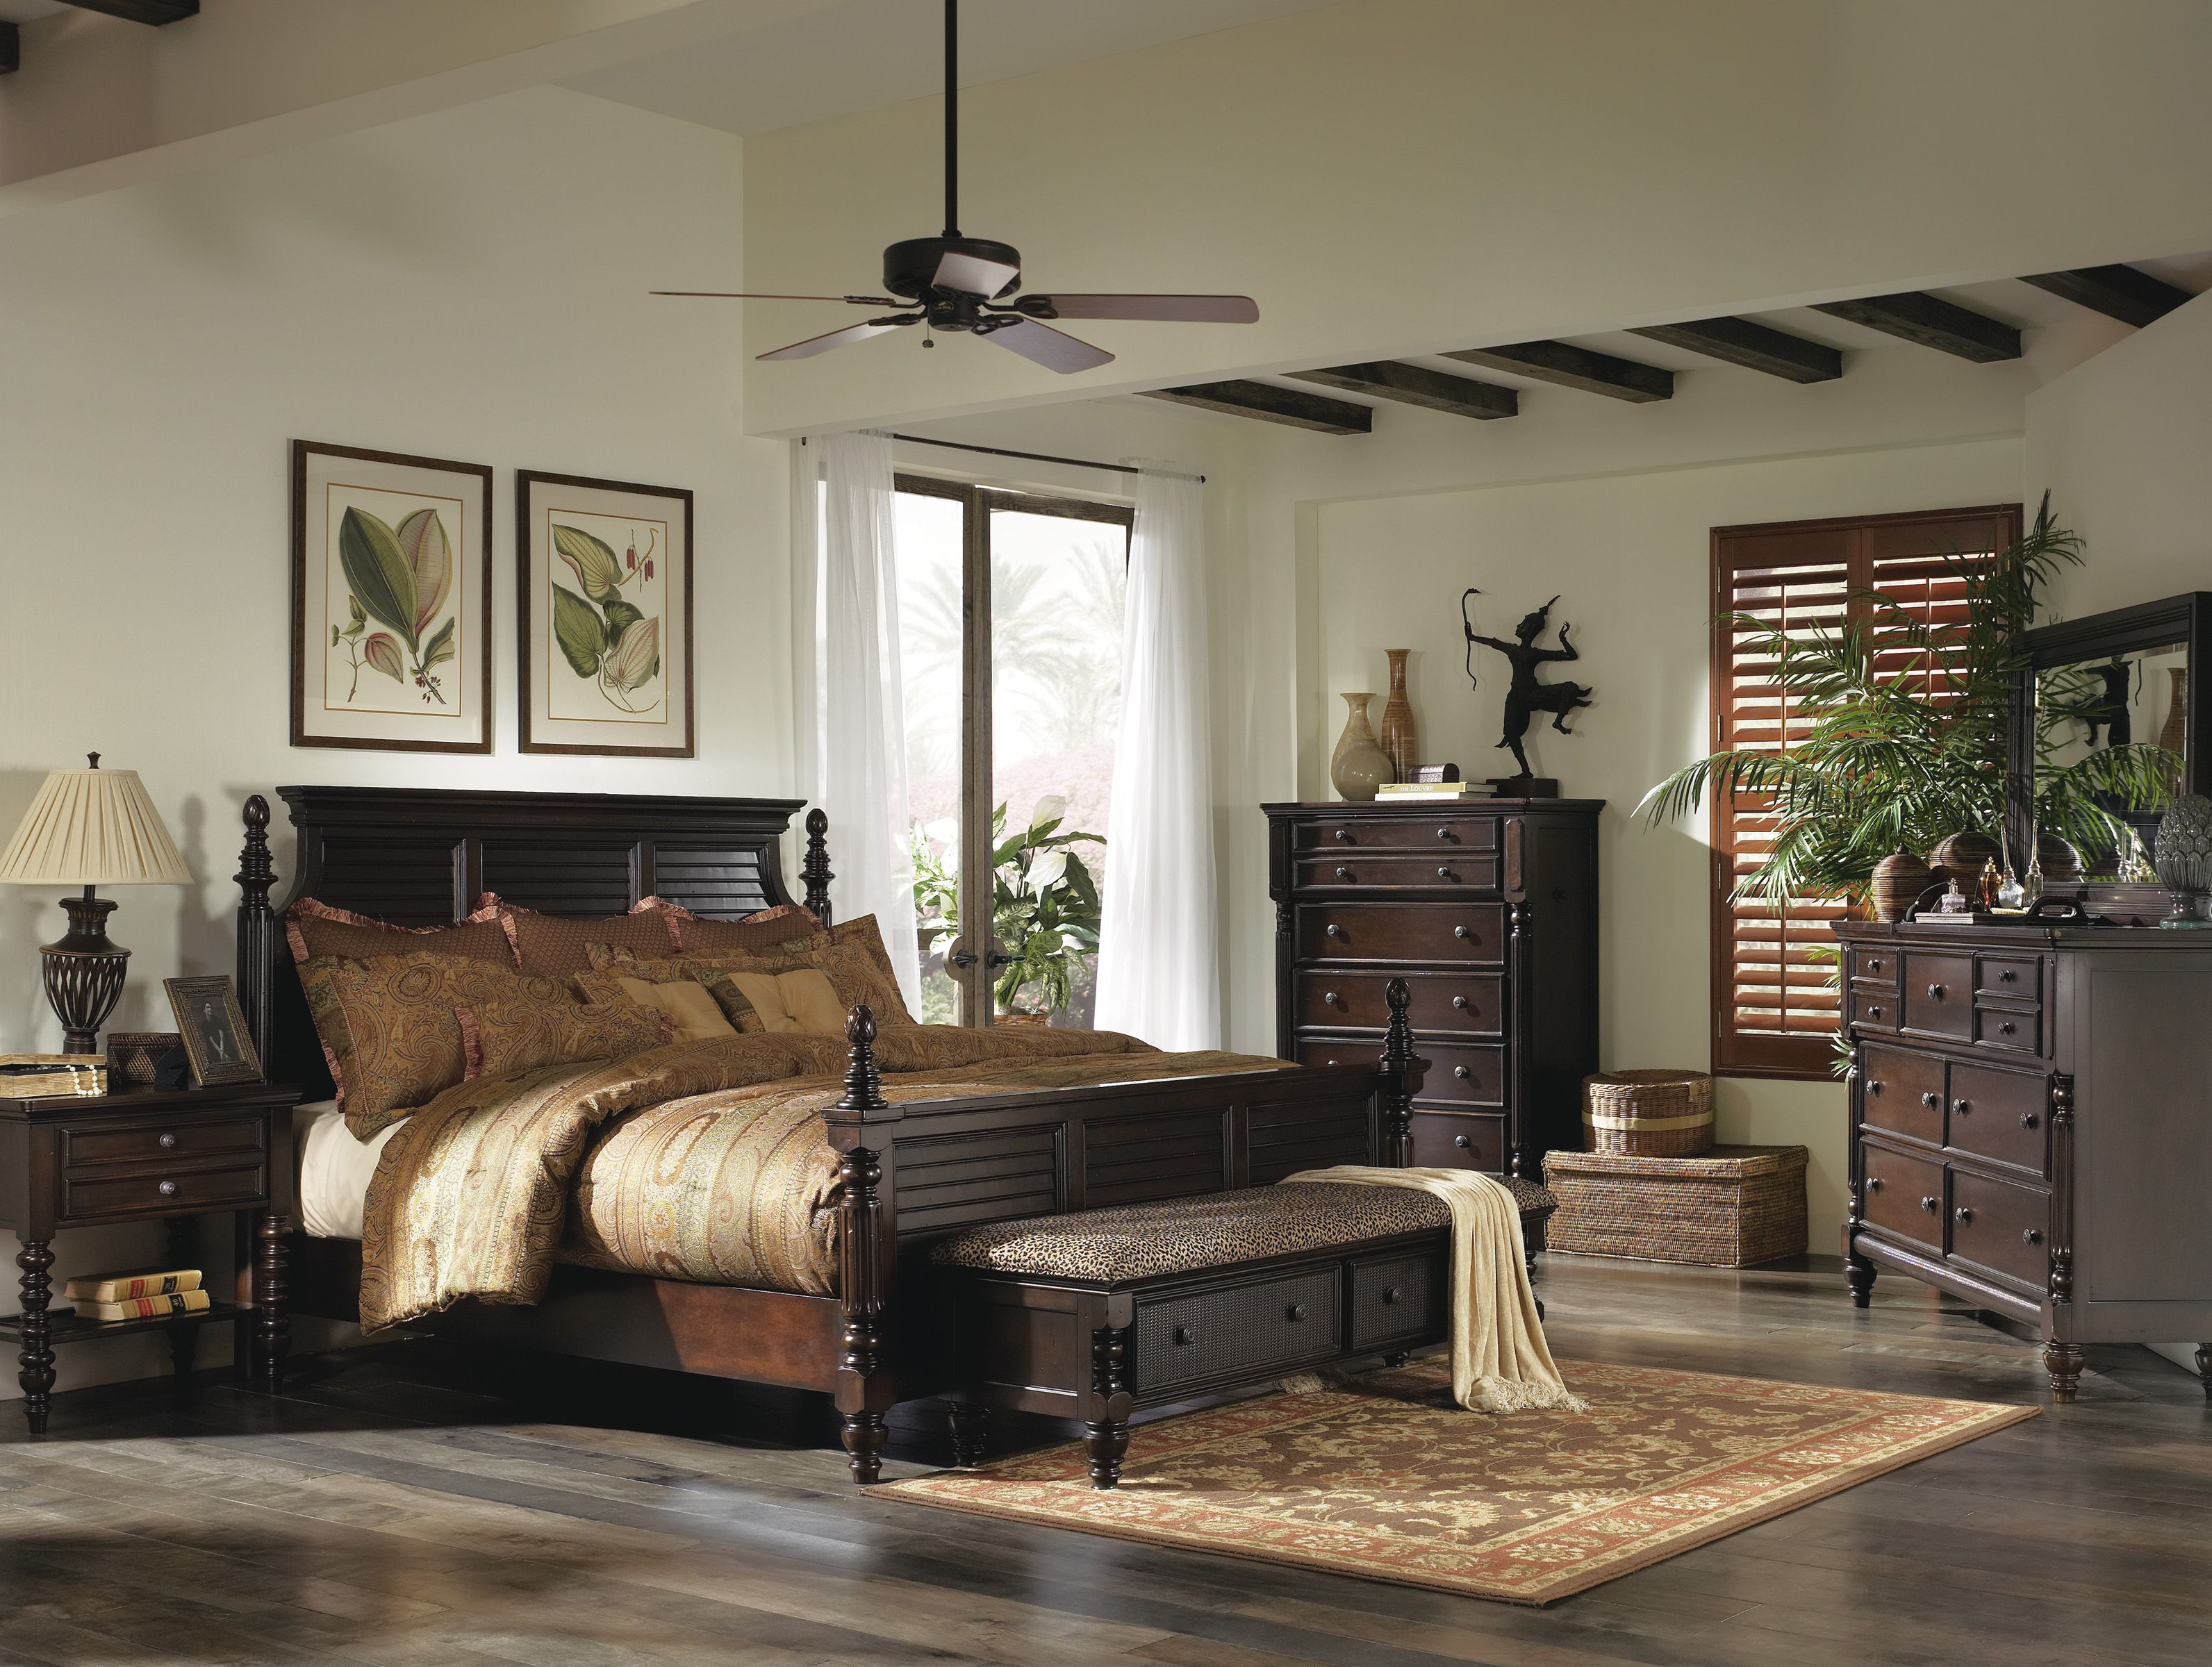 British Colonial Bedroom Furniture West Indies Style Pinterest